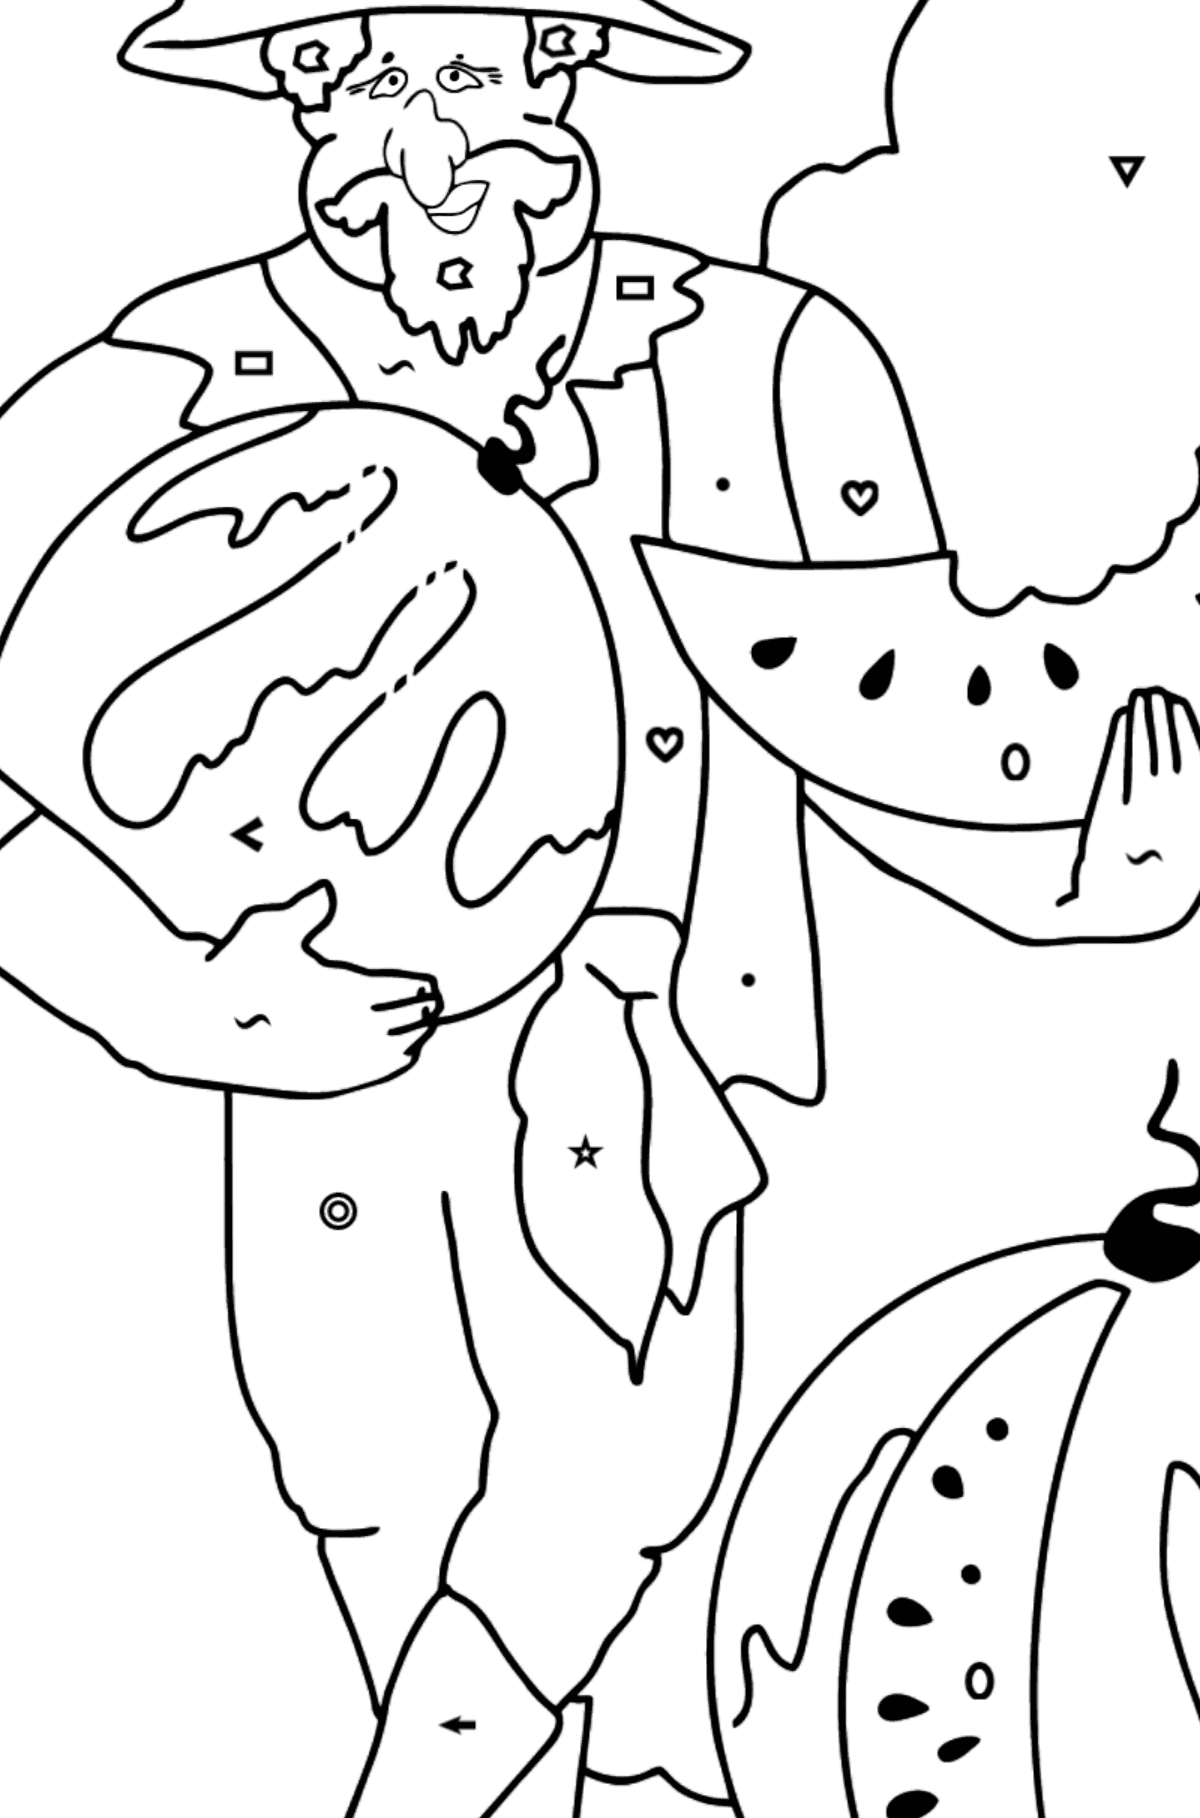 Coloring Page - A Pirate is Eating a Tasty Watermelon - Coloring by Symbols and Geometric Shapes for Kids